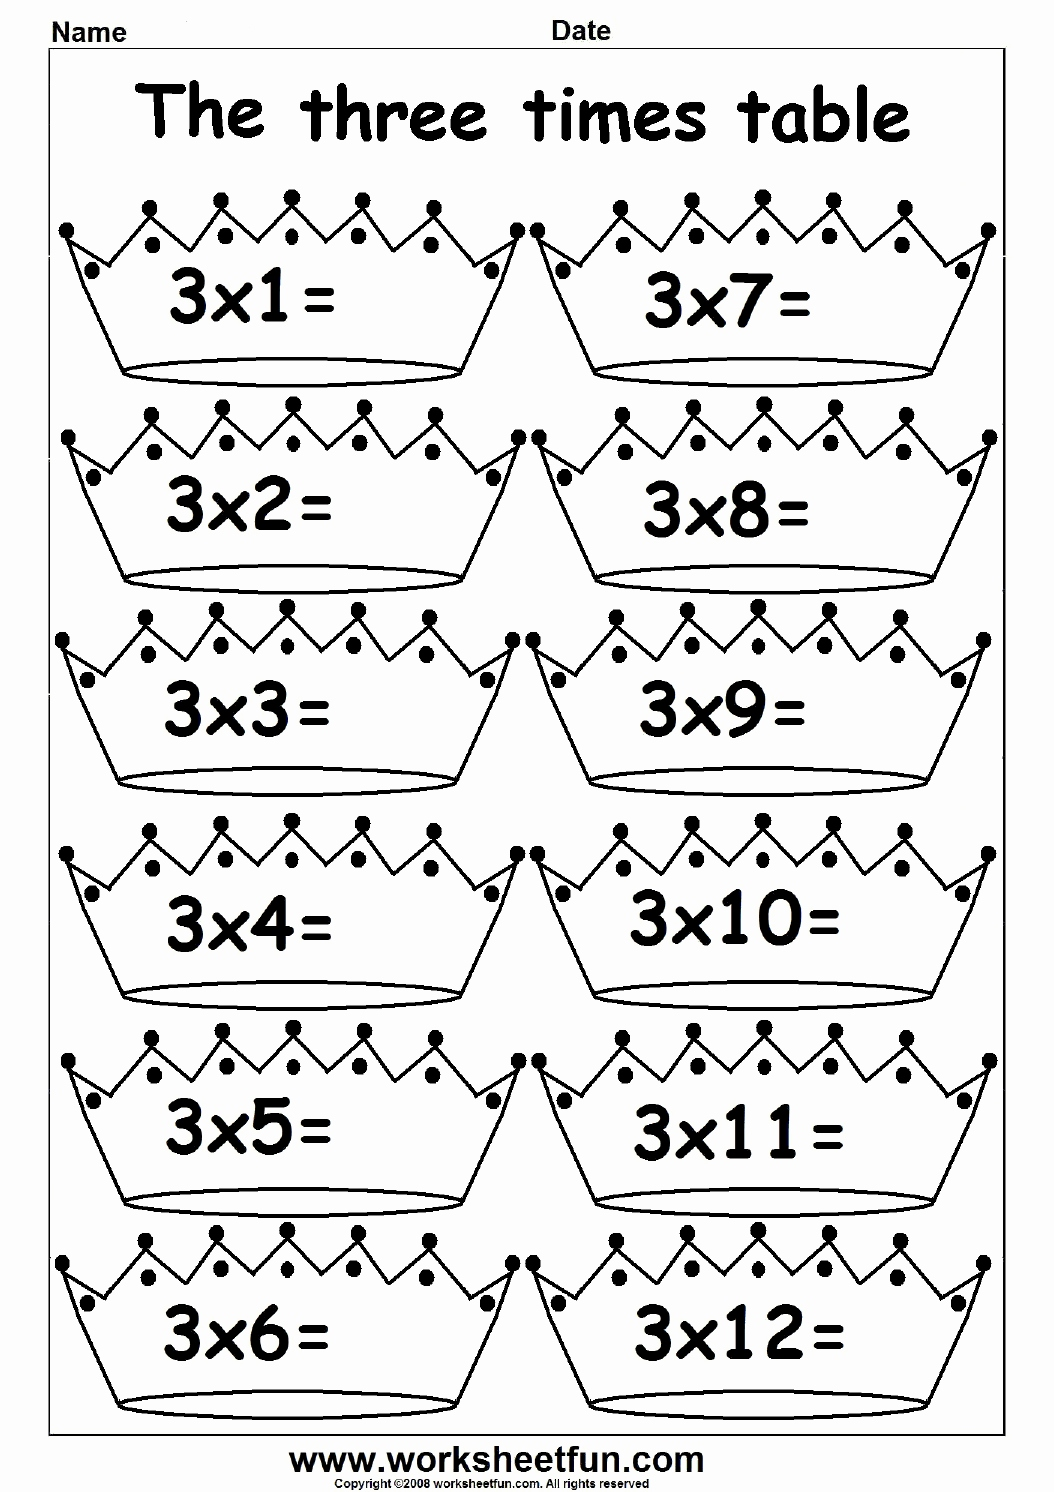 Arbeitsblatter Fur Vorschulkinder Luxus 2 3 4 5 6 7 8 9 10 11 and 12 Times Table Fun Times Table